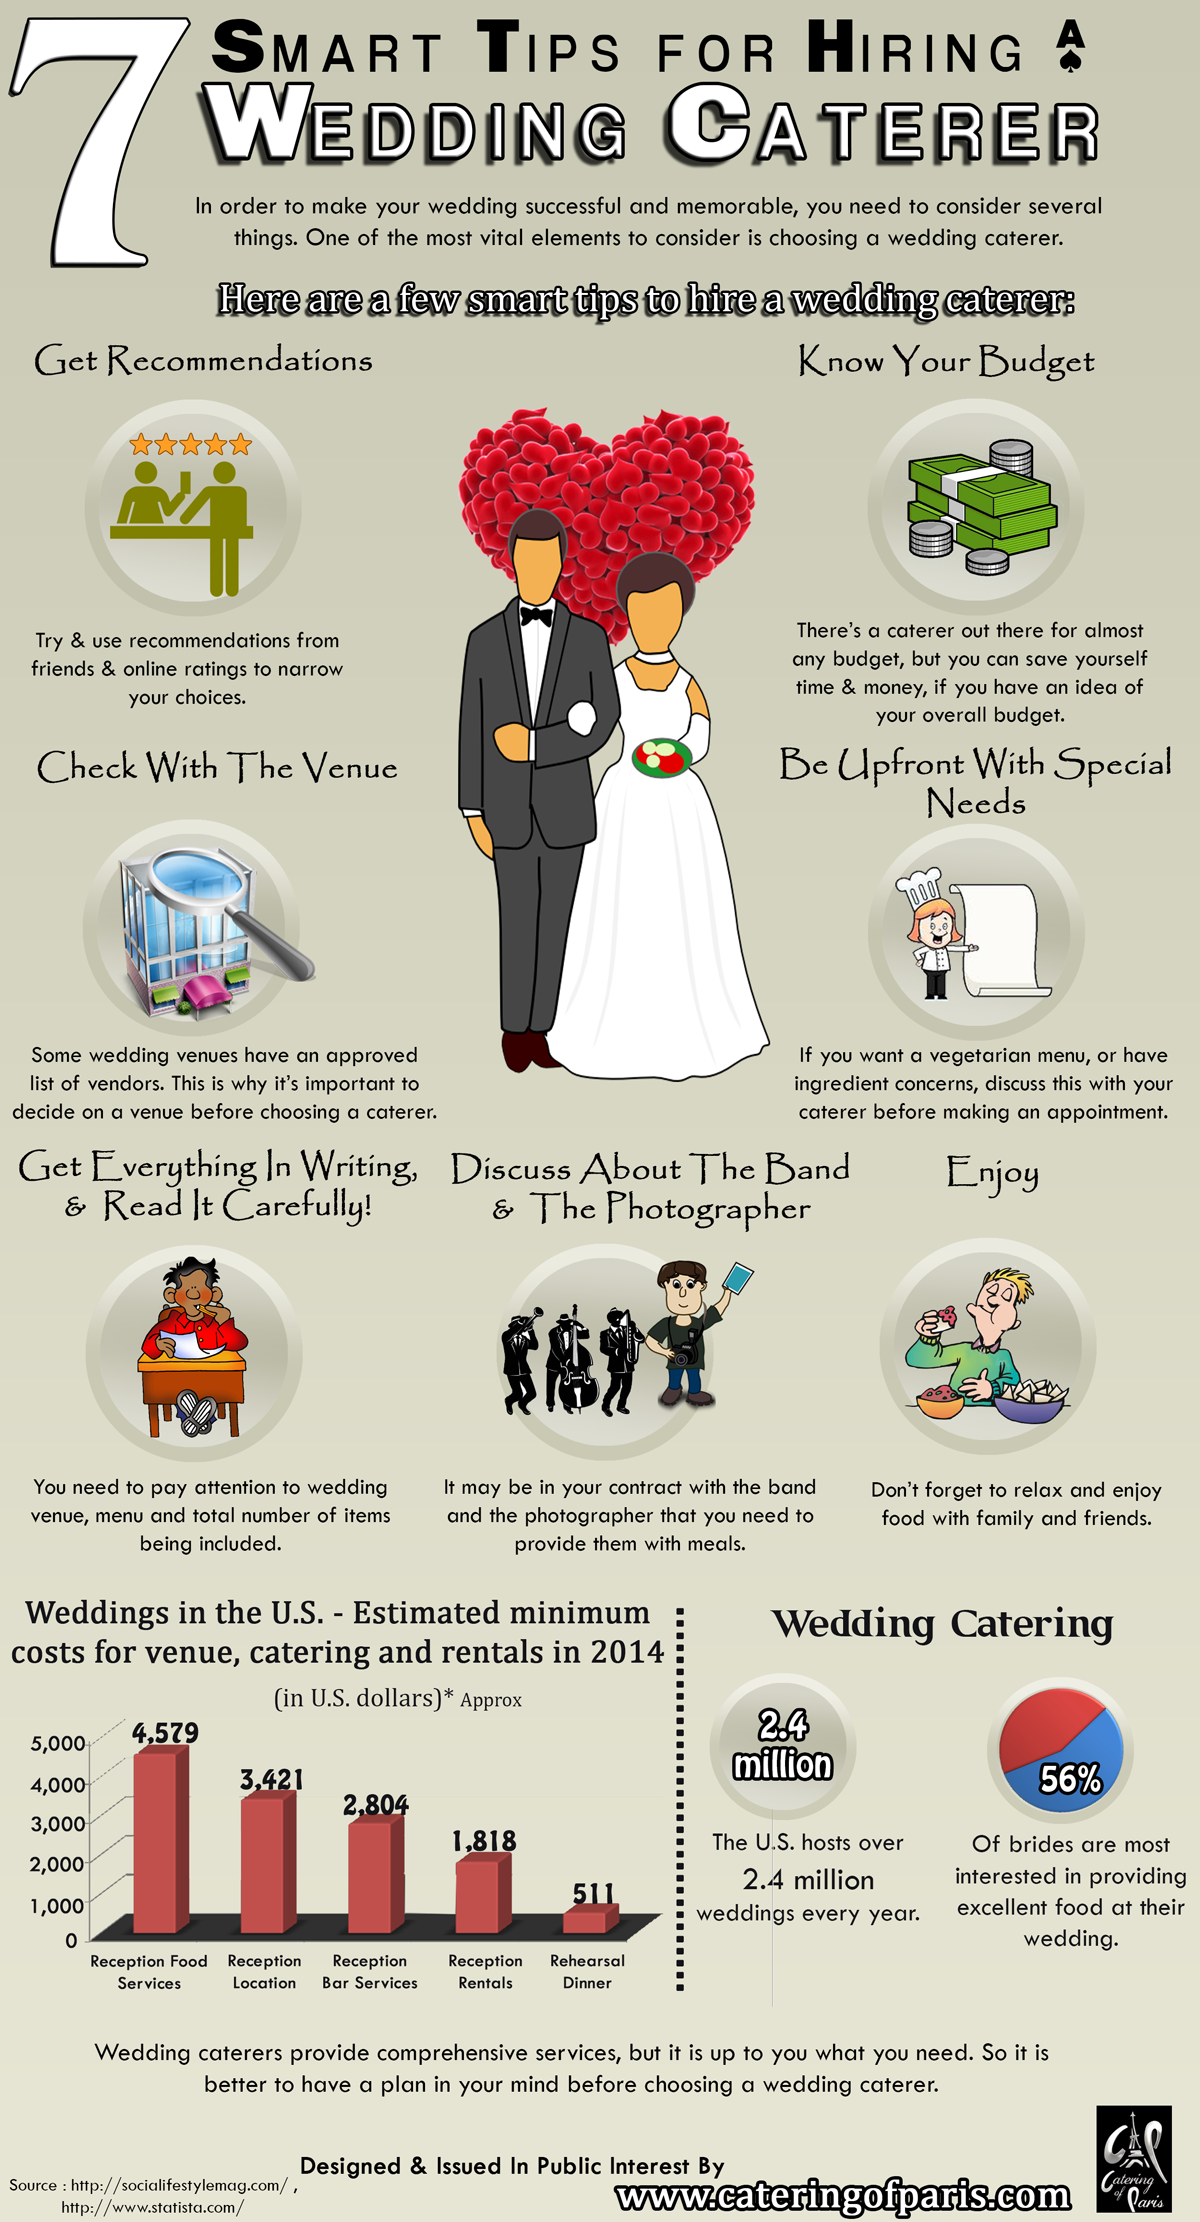 Smart tips for hiring a wedding caterer